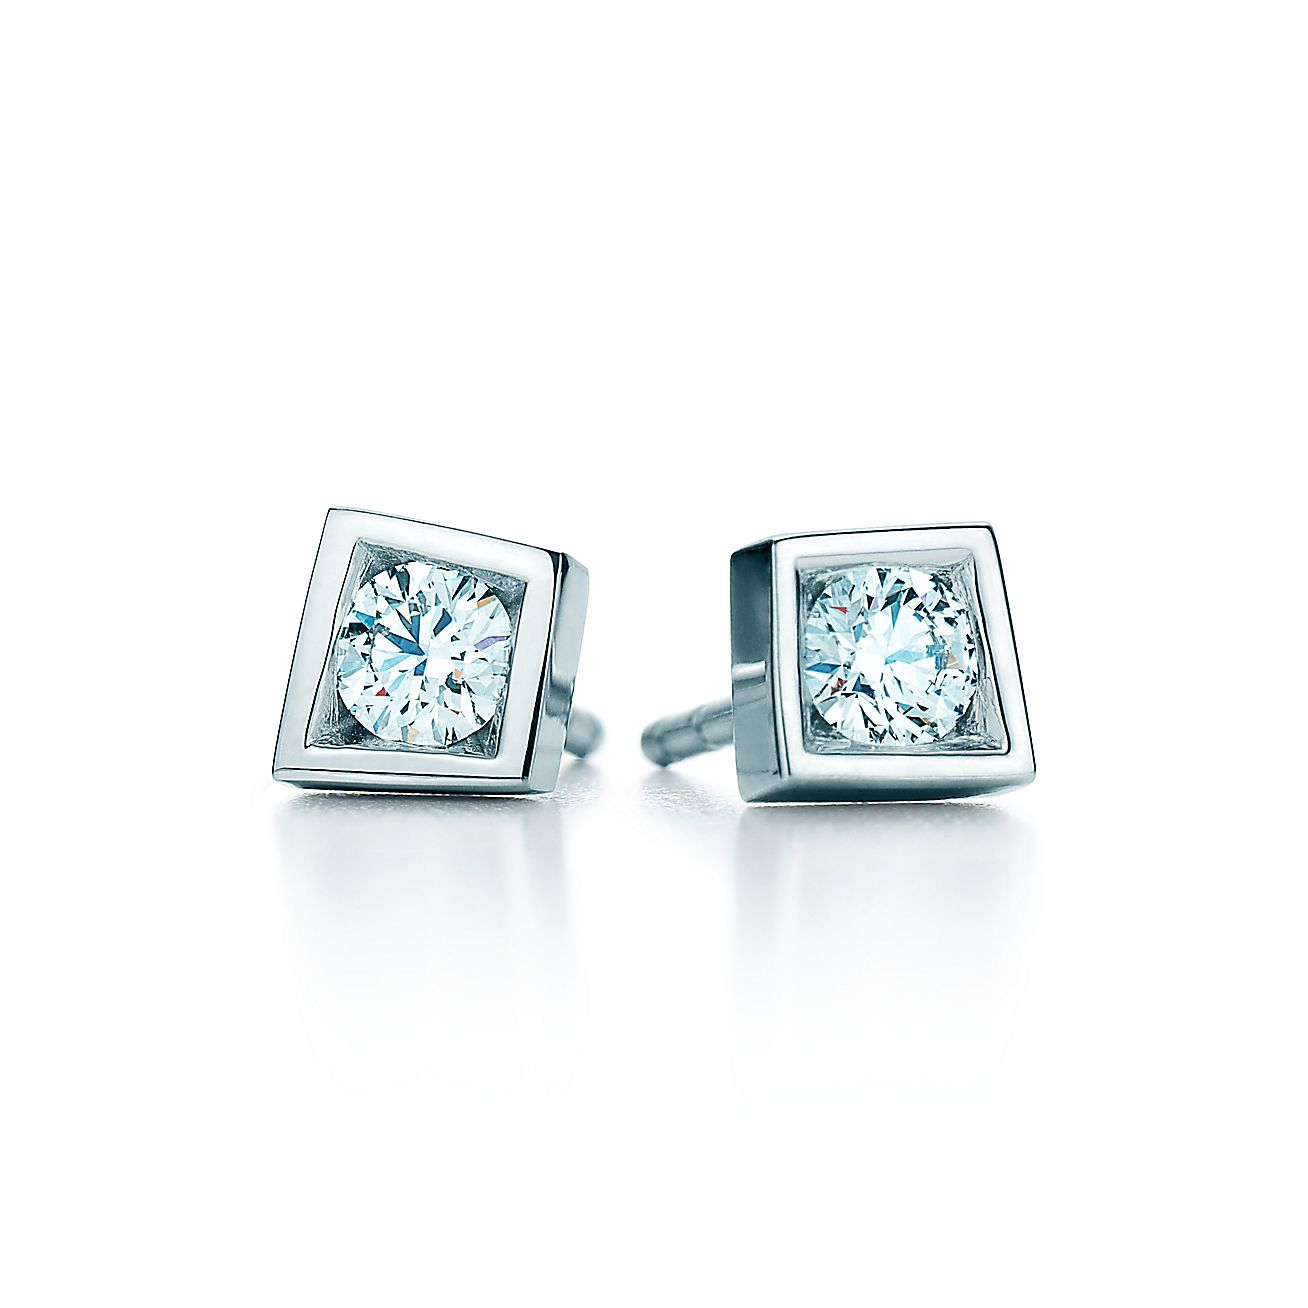 Frank Gehry Torque Bead Earrings Of Diamonds In 18k White